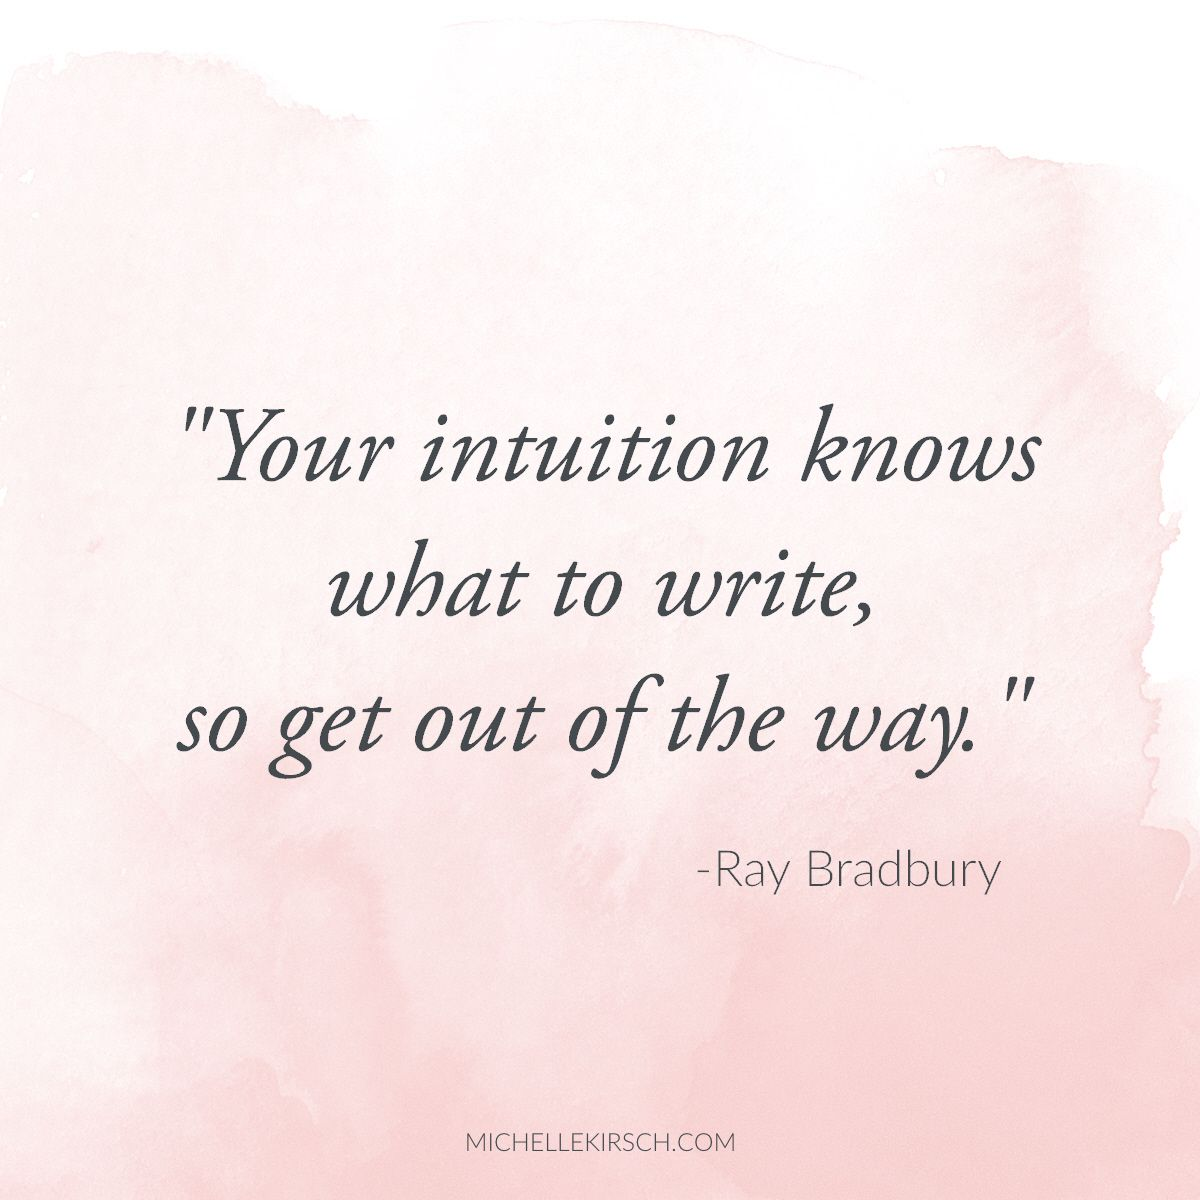 how can i use journaling or automatic writing to access my inner your intuition knows what to write so get out of the way quote by